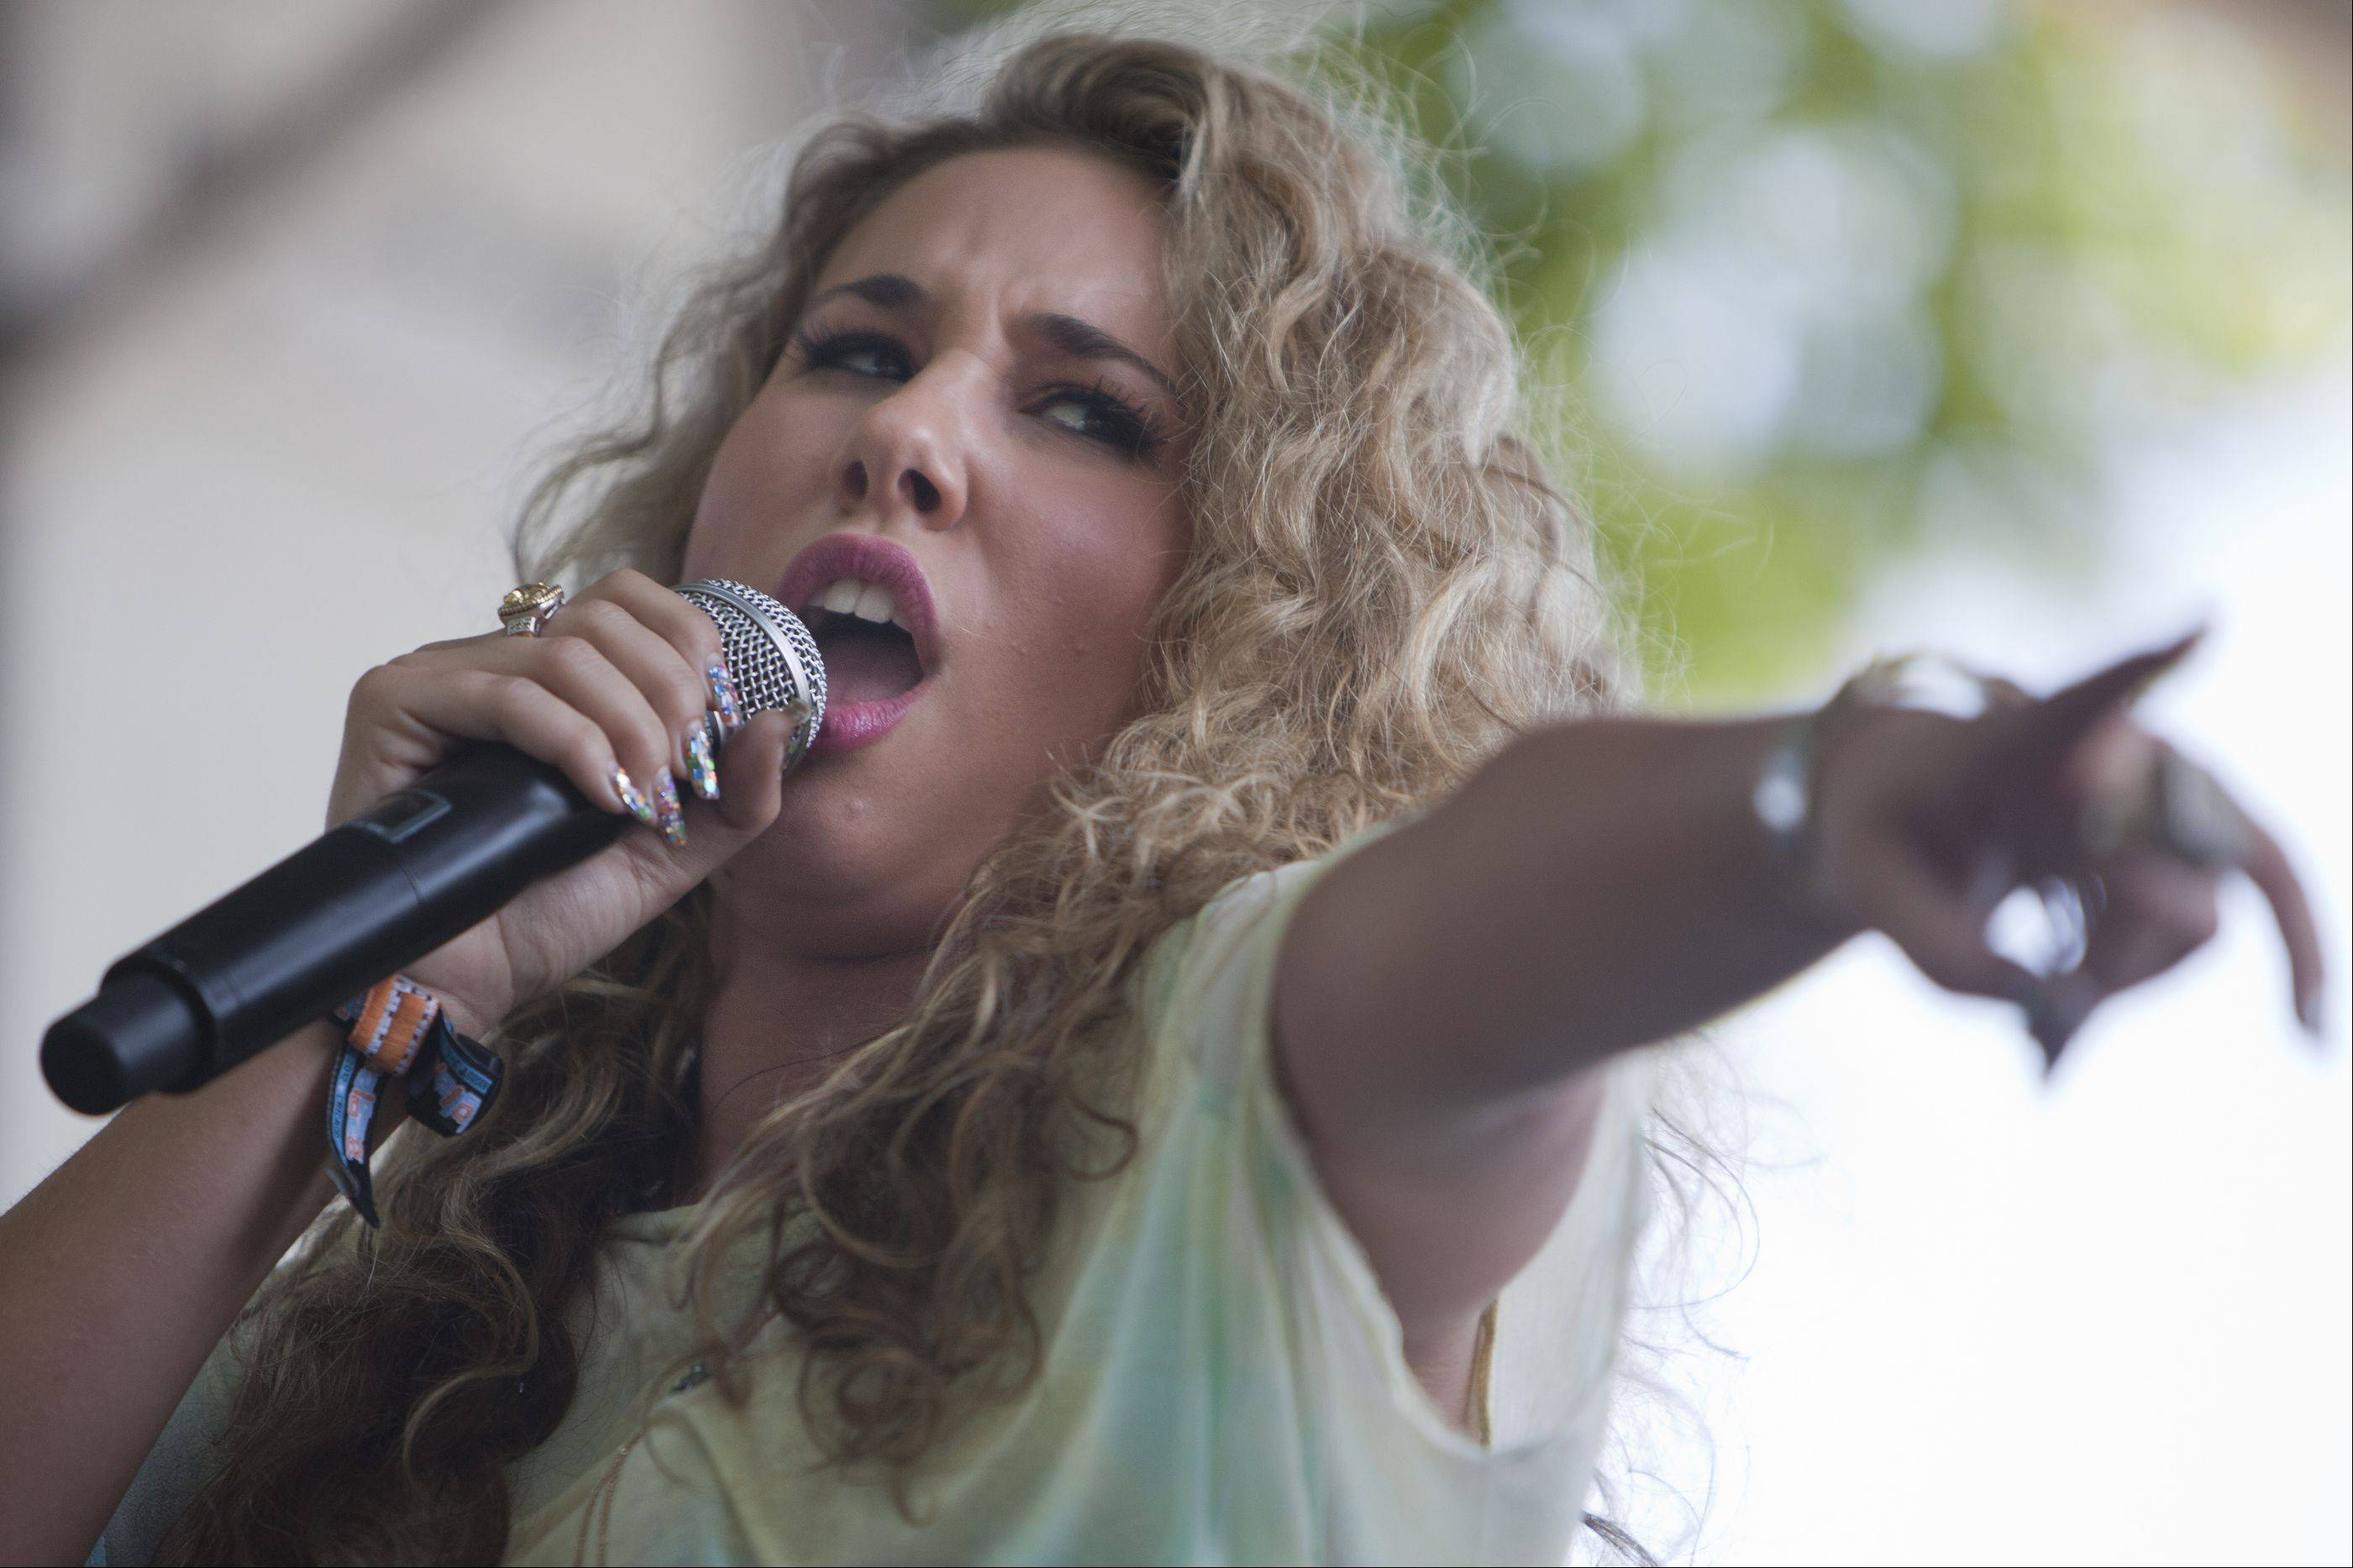 Haley Reinhart performs during Lollapalooza in Grant Park on Friday at the BMI stage.